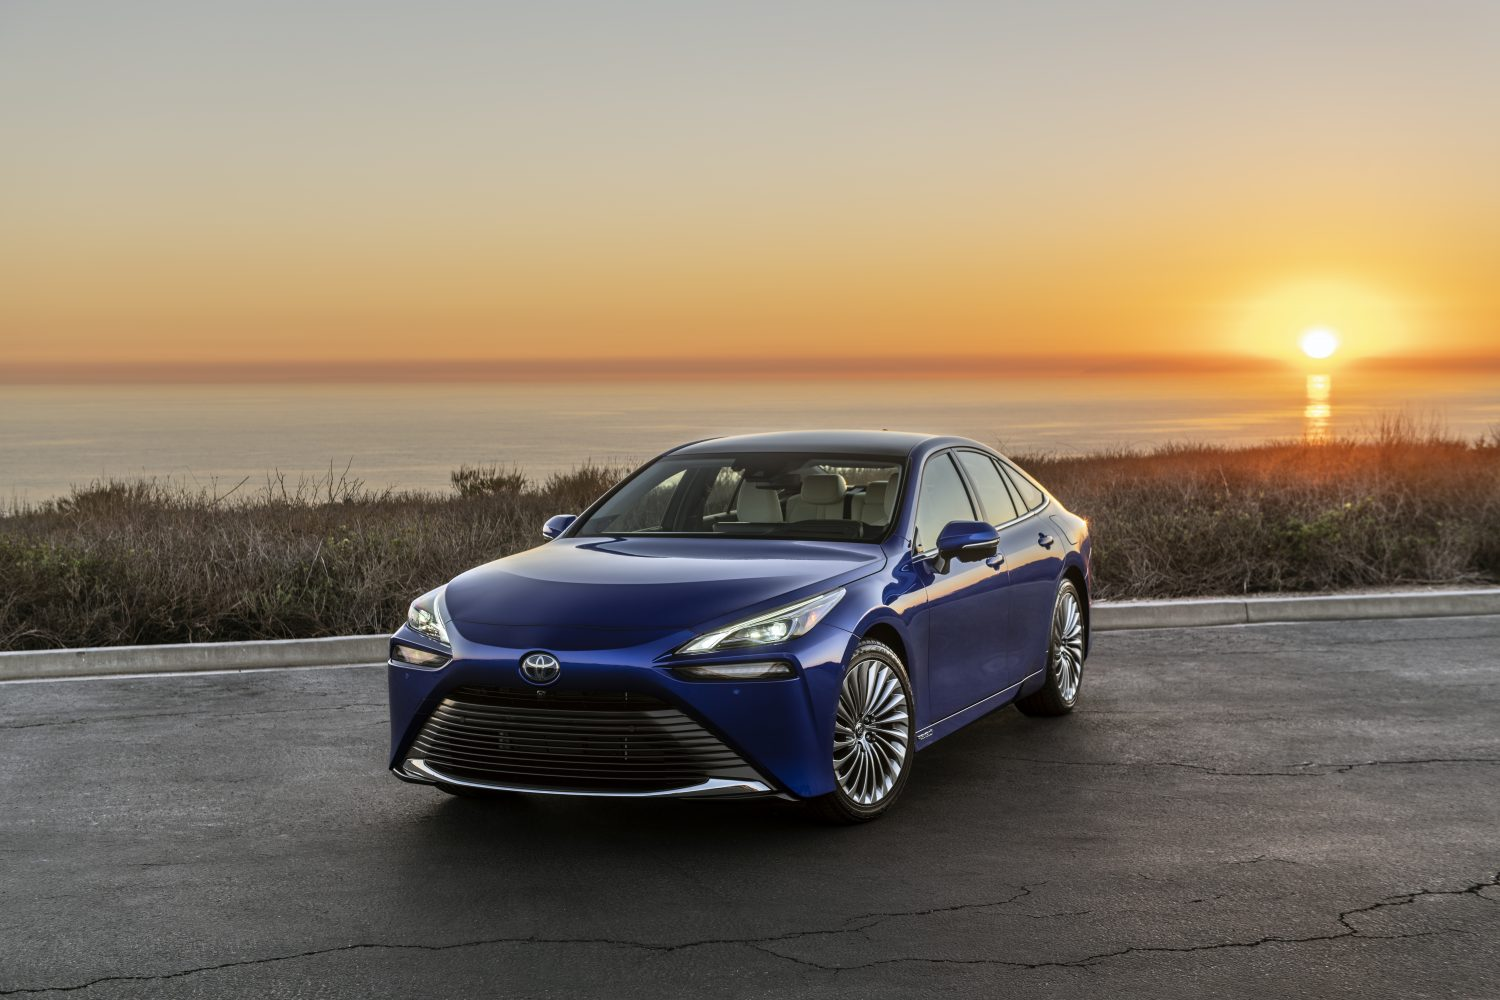 The 2021 Toyota Mirai was discussed during the recent LA Auto Show virtual Media Day.